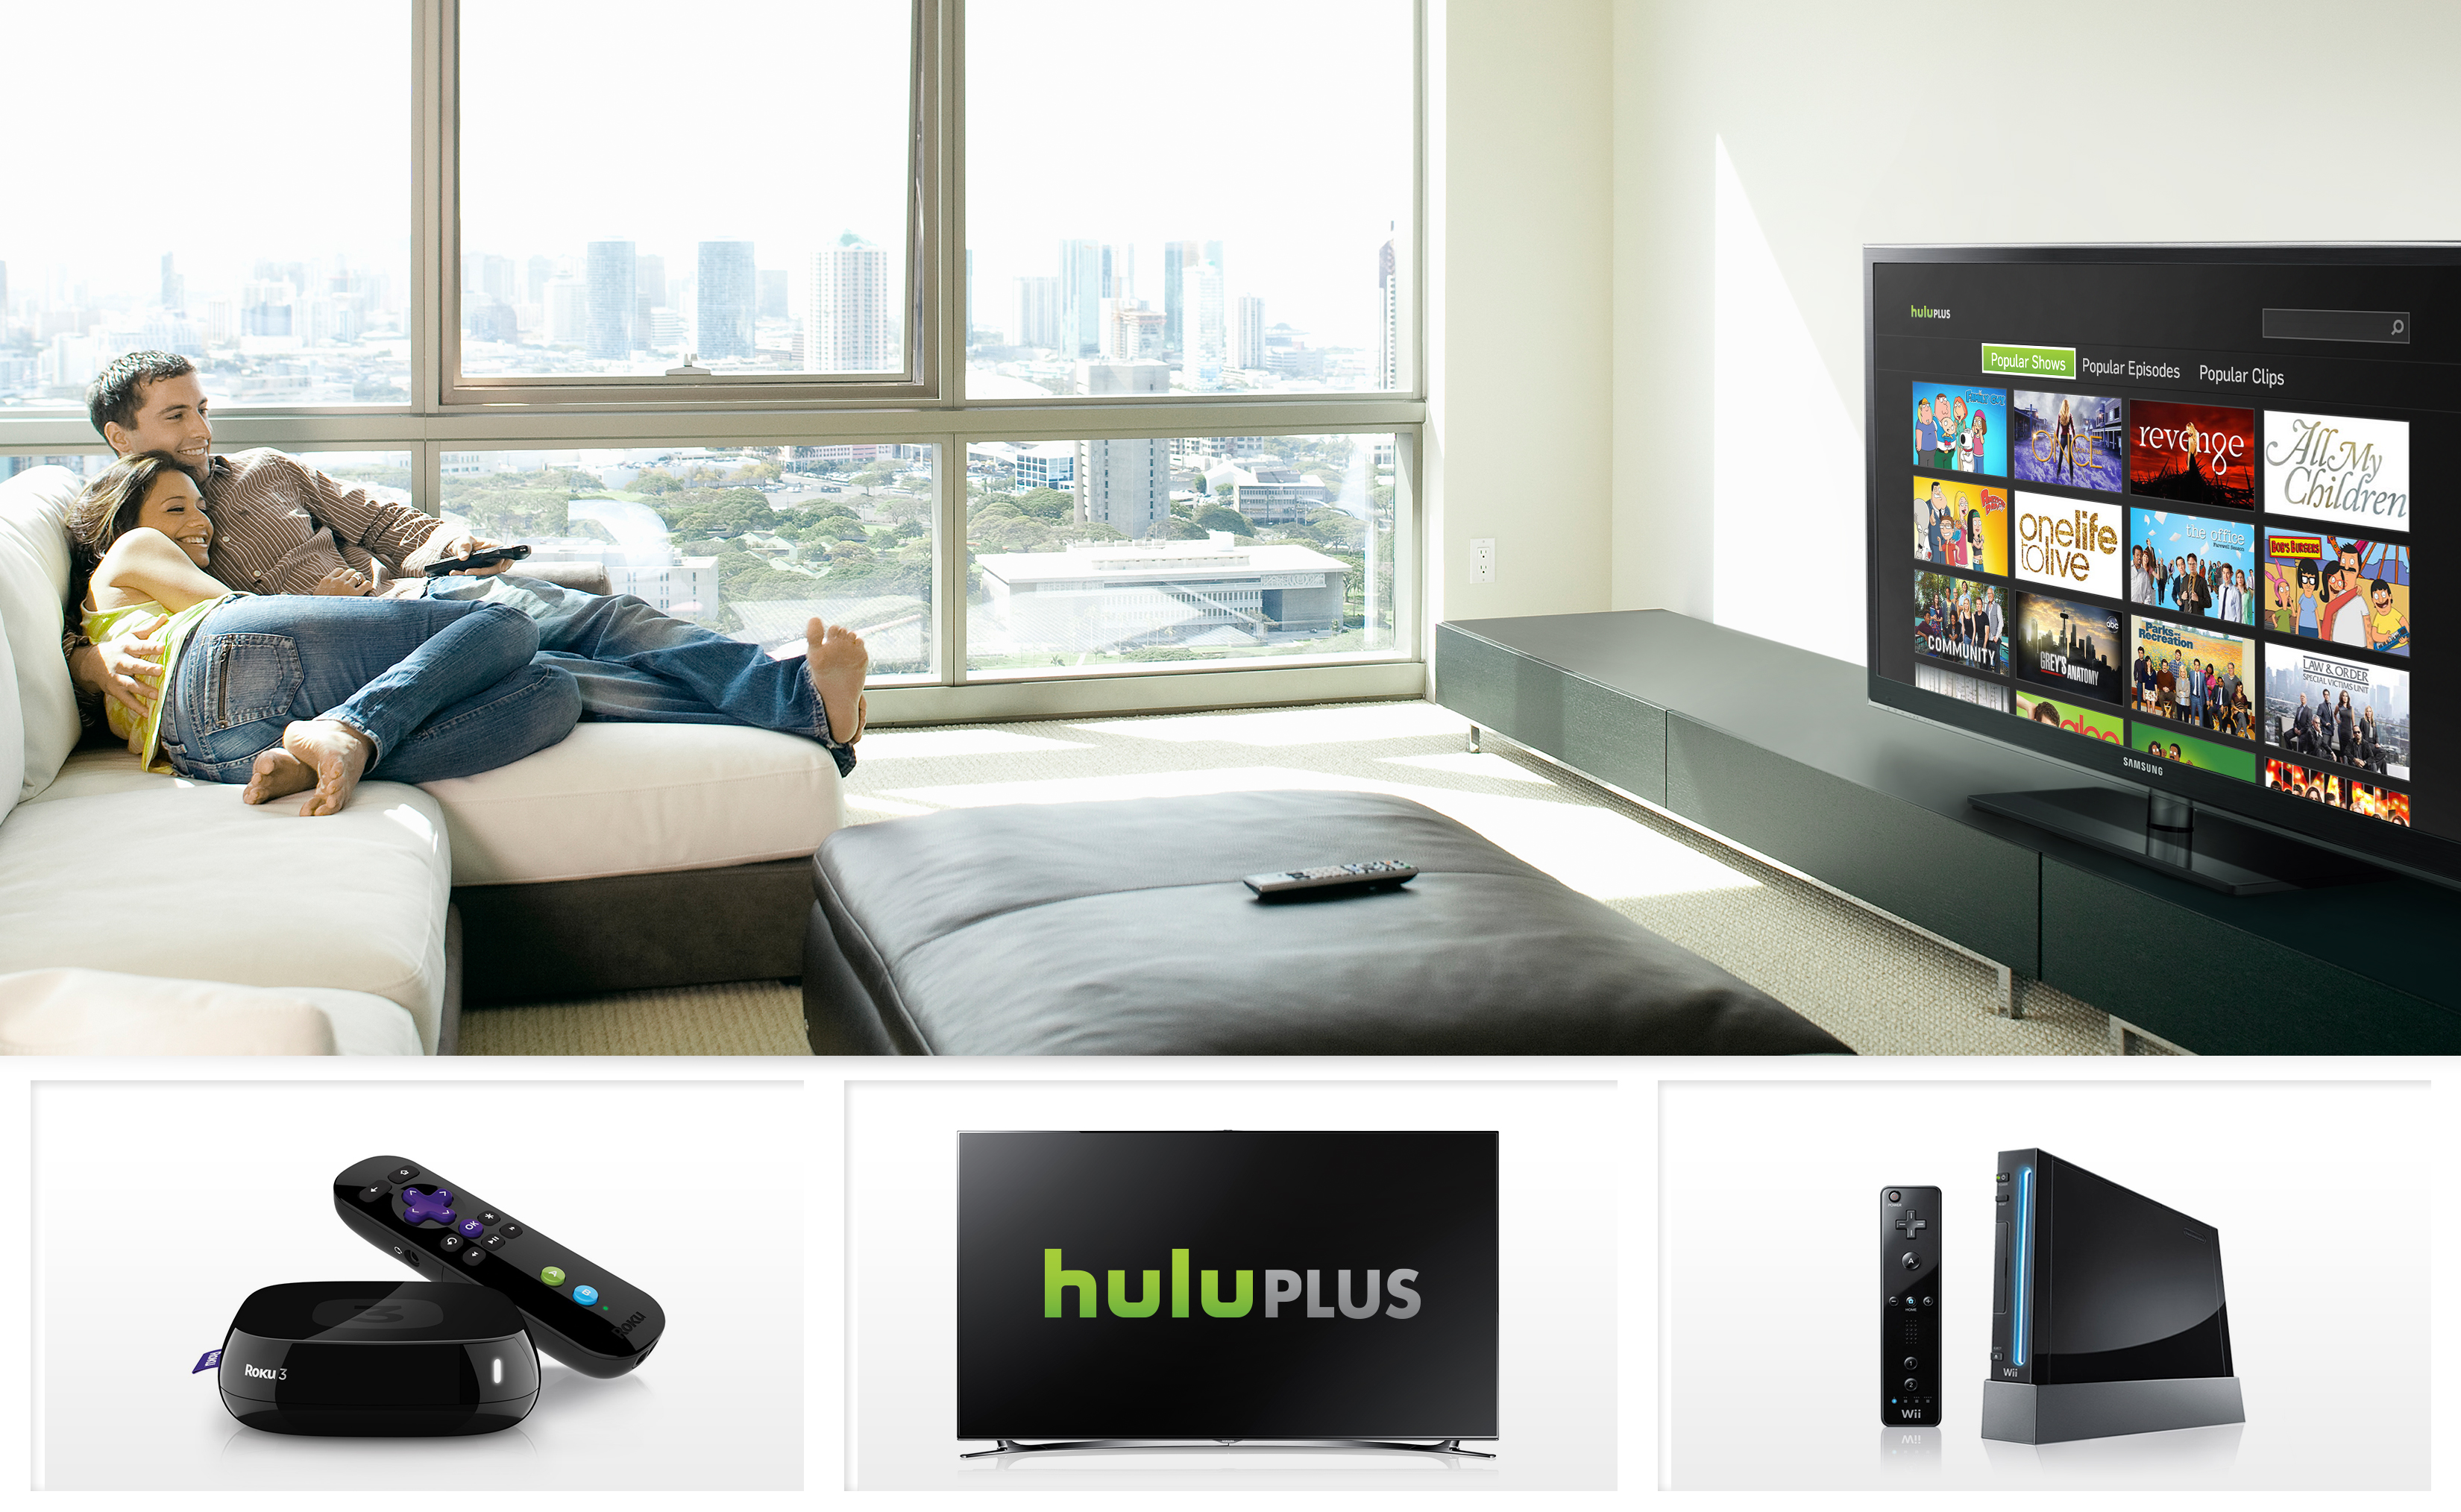 The New Hulu Plus Experience Coming to a Living Room Near You ...